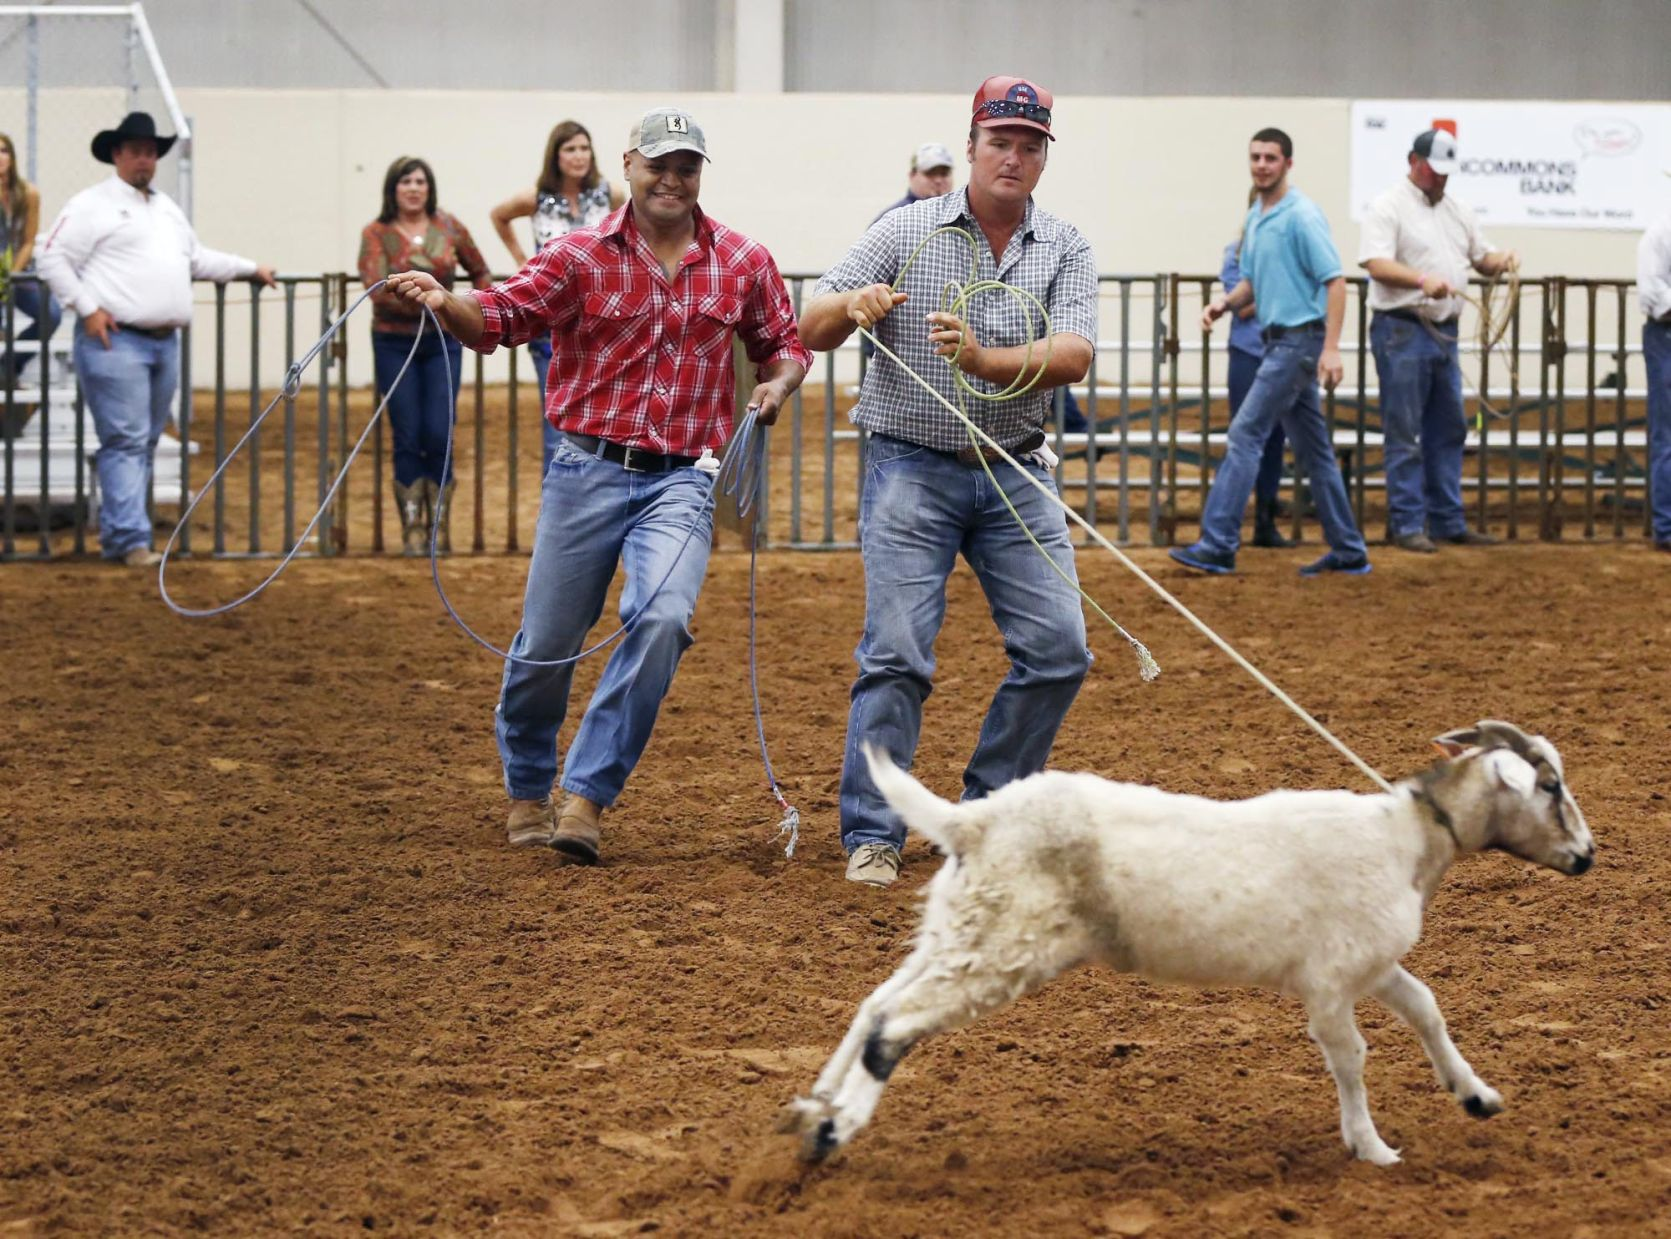 online payment marketplace goat rodeo Flash seats tickets - buy, sell or transfer tickets on the flash seats digital ticket marketplace secure, fast and easy.